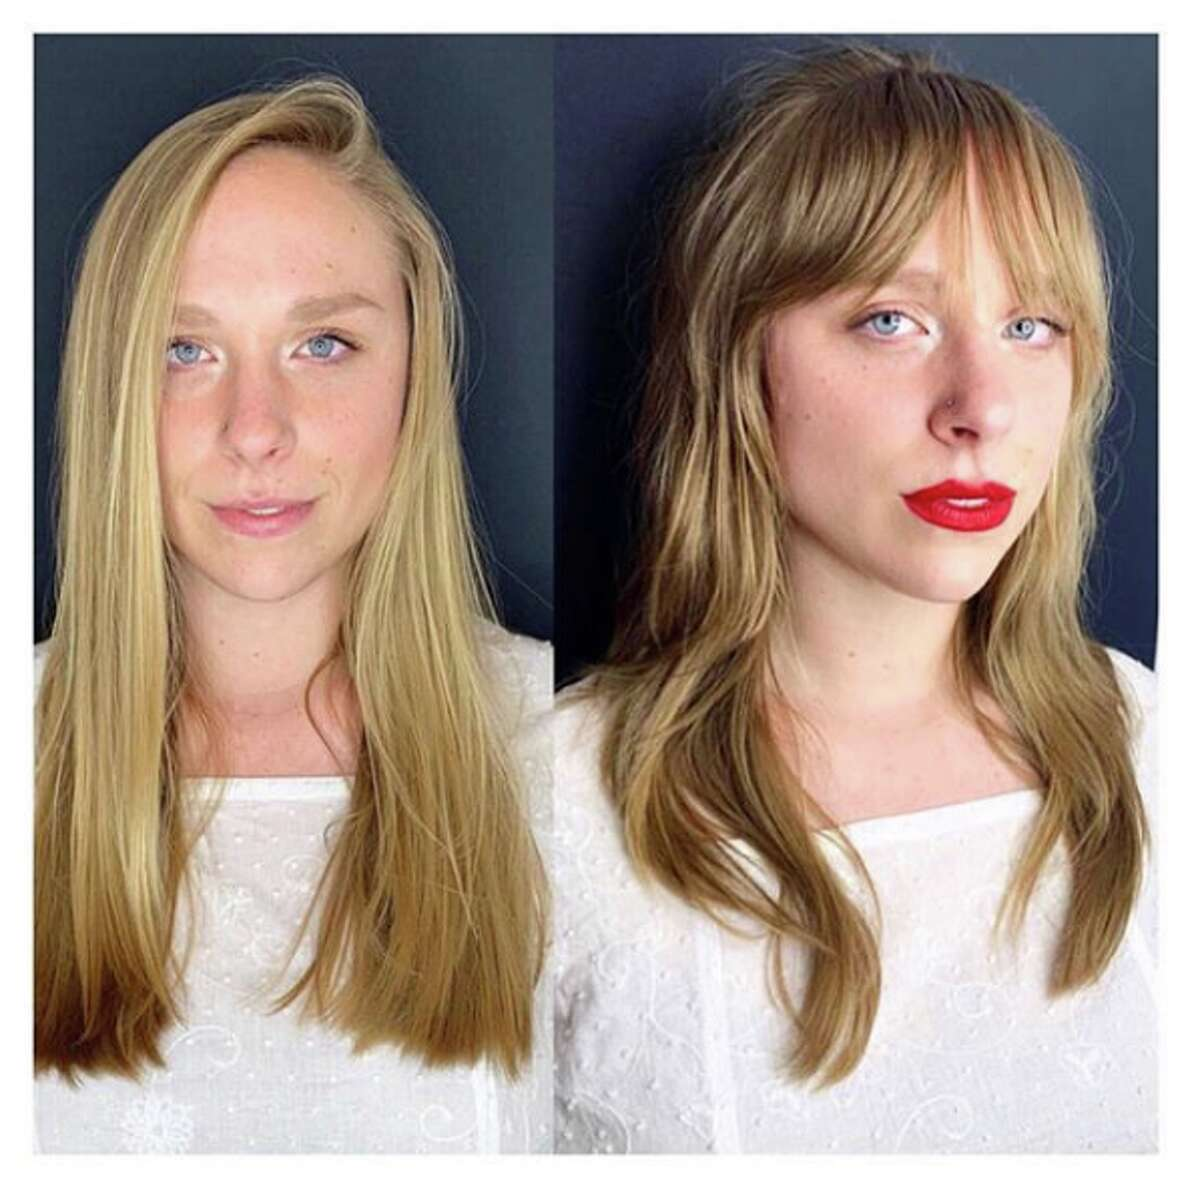 Before and after images of haircuts at Edo Salon and Gallery in San Francisco. Salon owner Jayne Matthews estimates at least 80 percent of clients find Edo from Instagram (@edosalonandgallery).